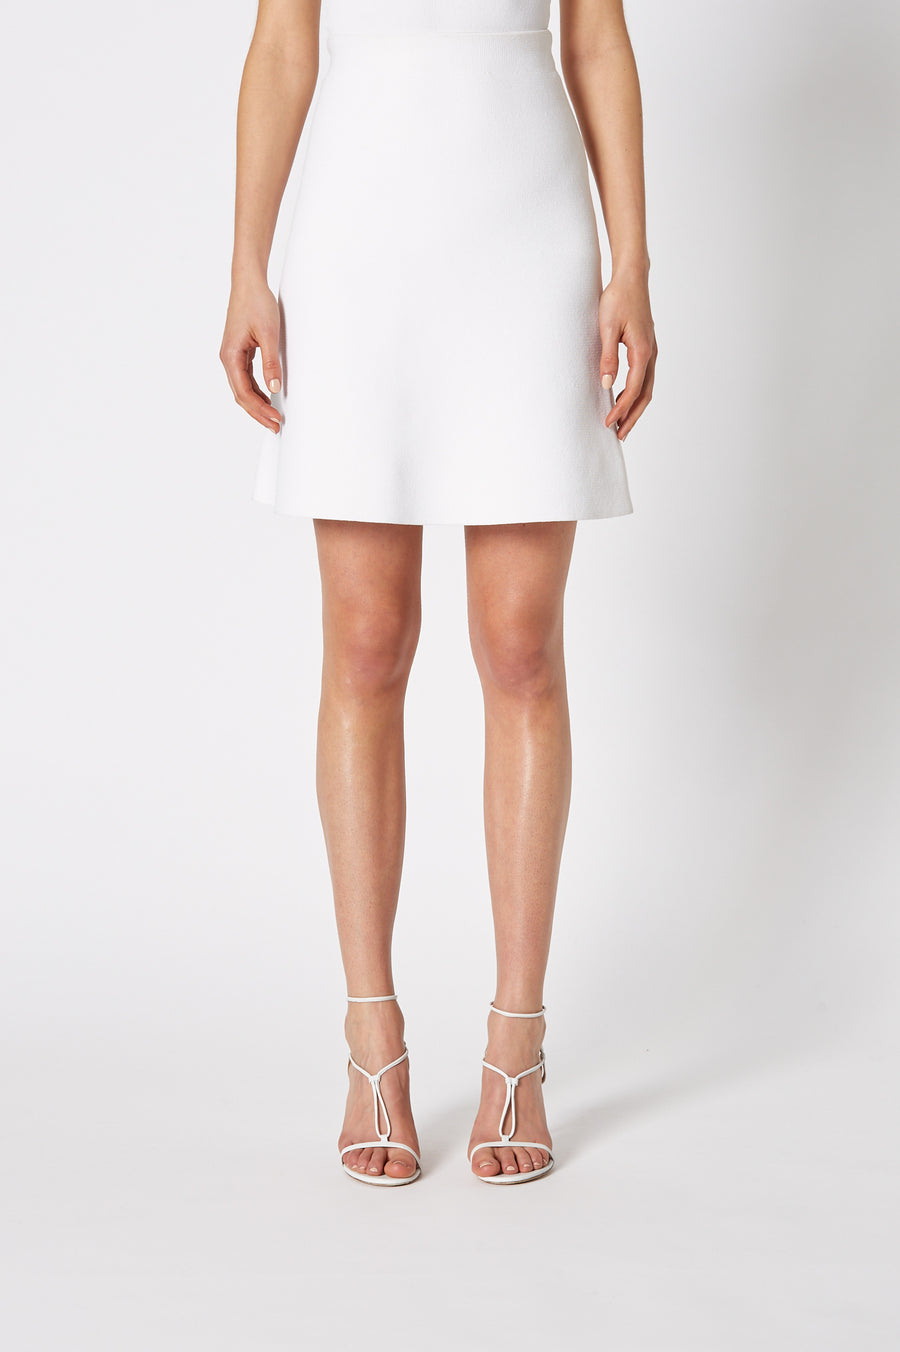 The Crepe Knit A-Line Skirt is fitted at the waist, has an A-line body and sits above the knee.